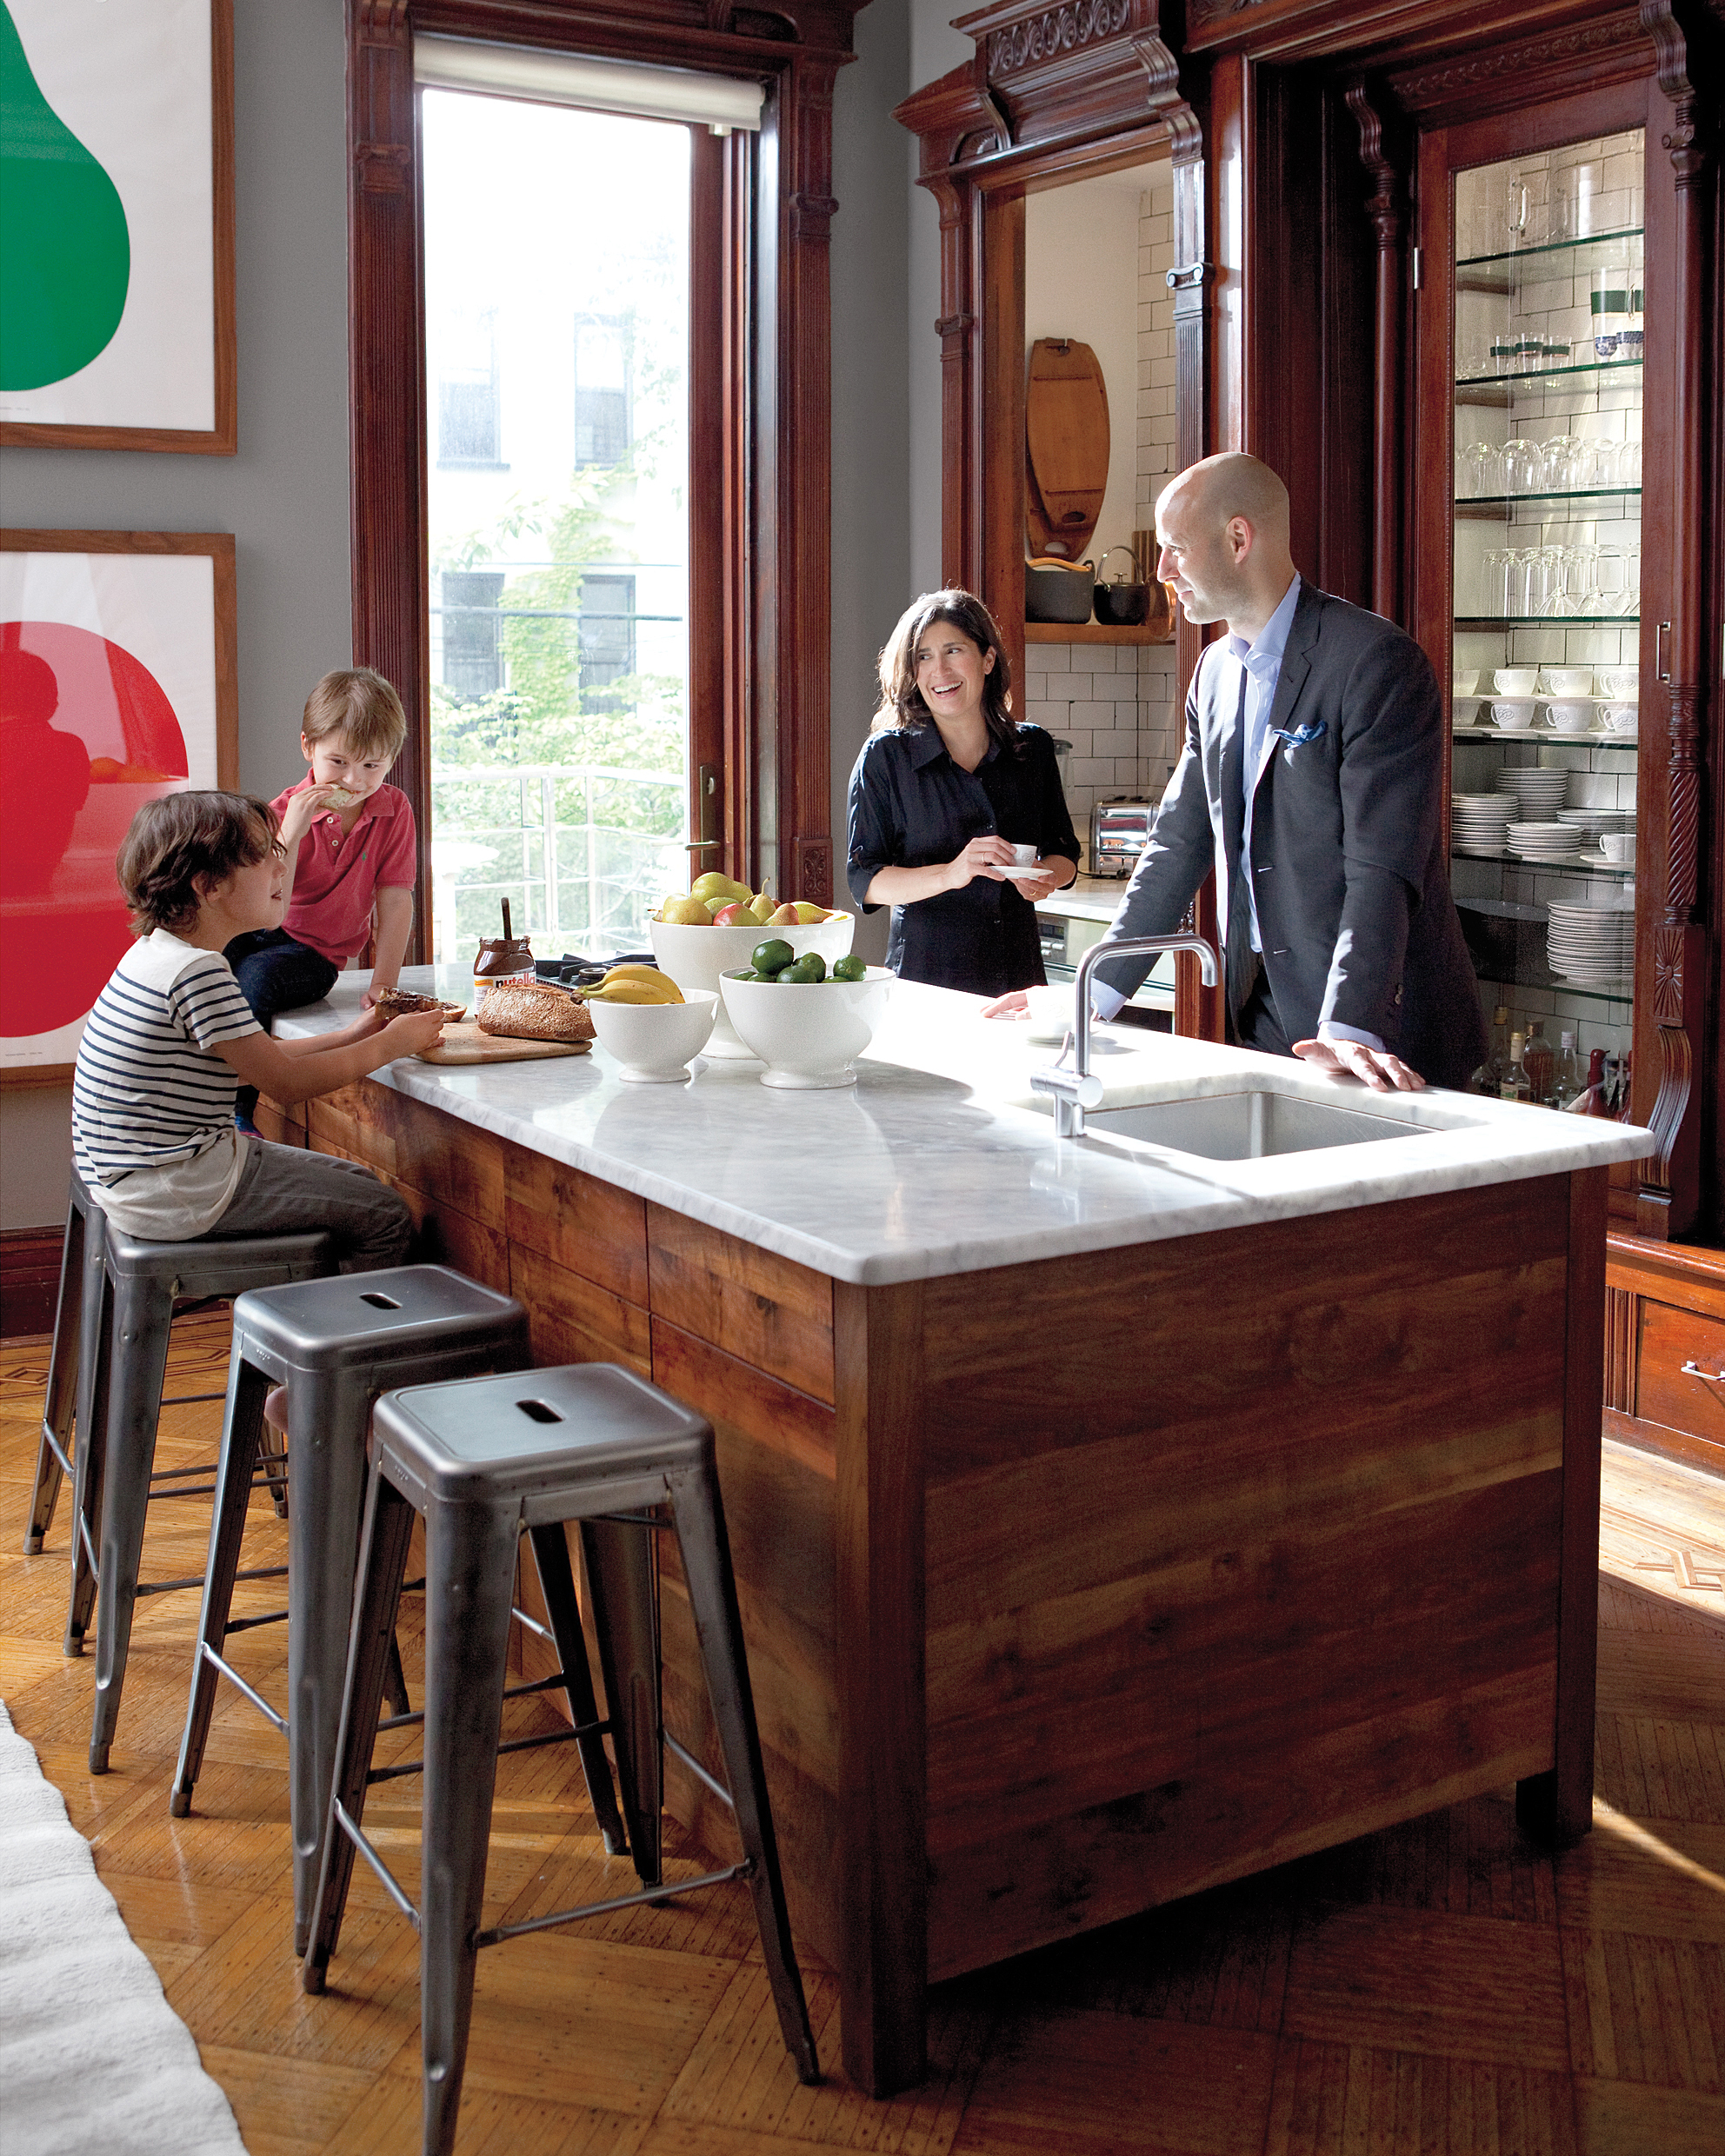 Home Tour: A Family-Oriented Brownstone in Brooklyn